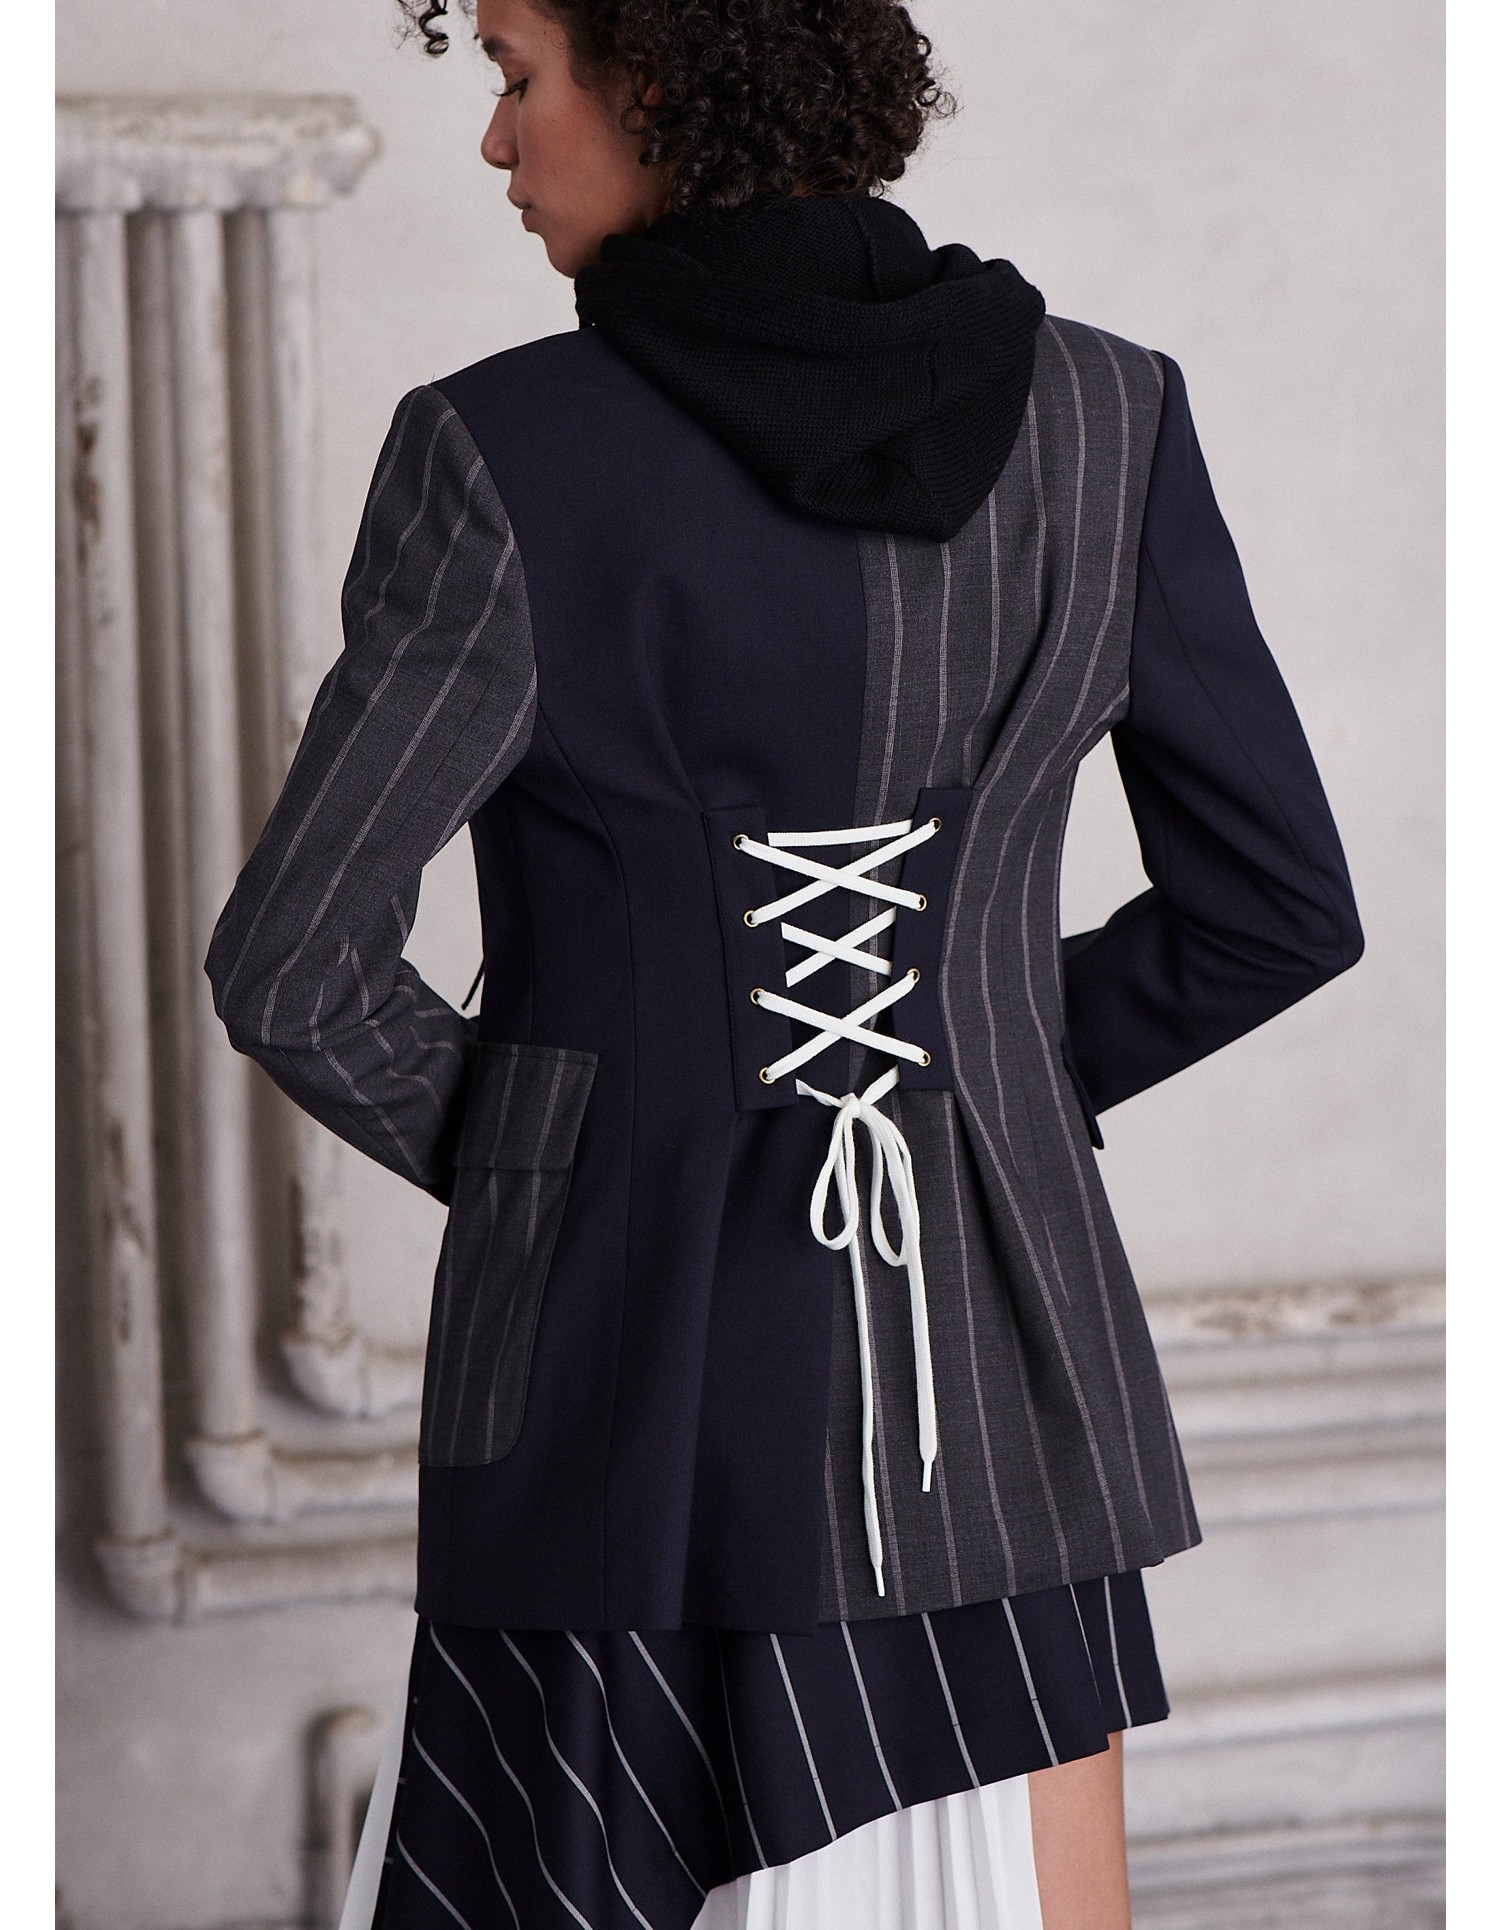 MONSE Patchwork Lace Up Jacket on Model Back View